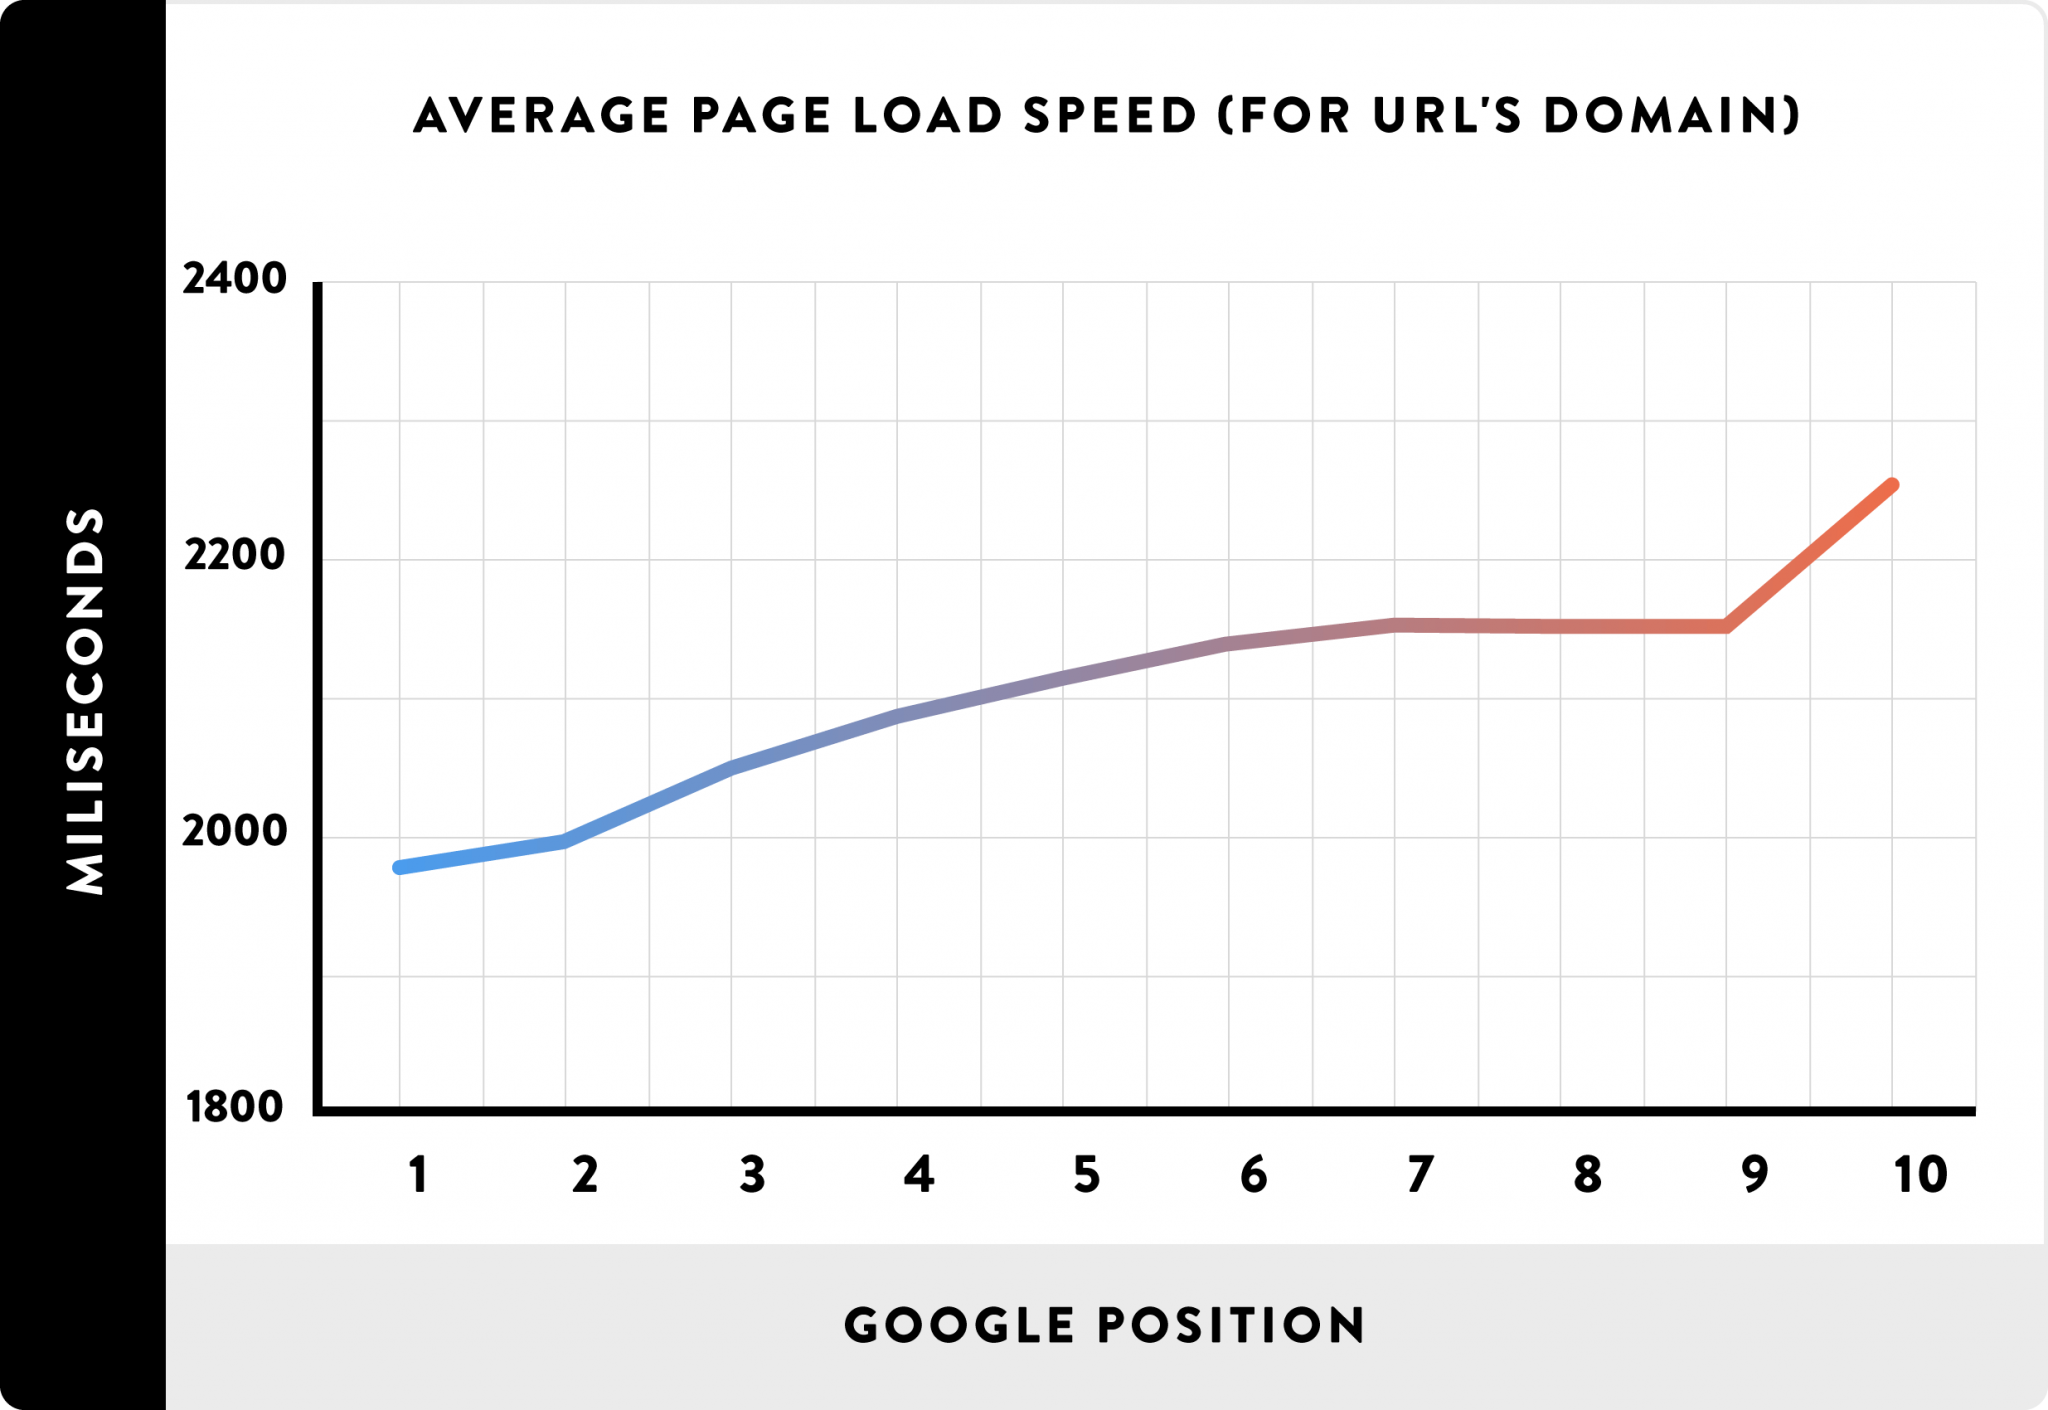 Average Page Load Spead (for URL's domain)_line